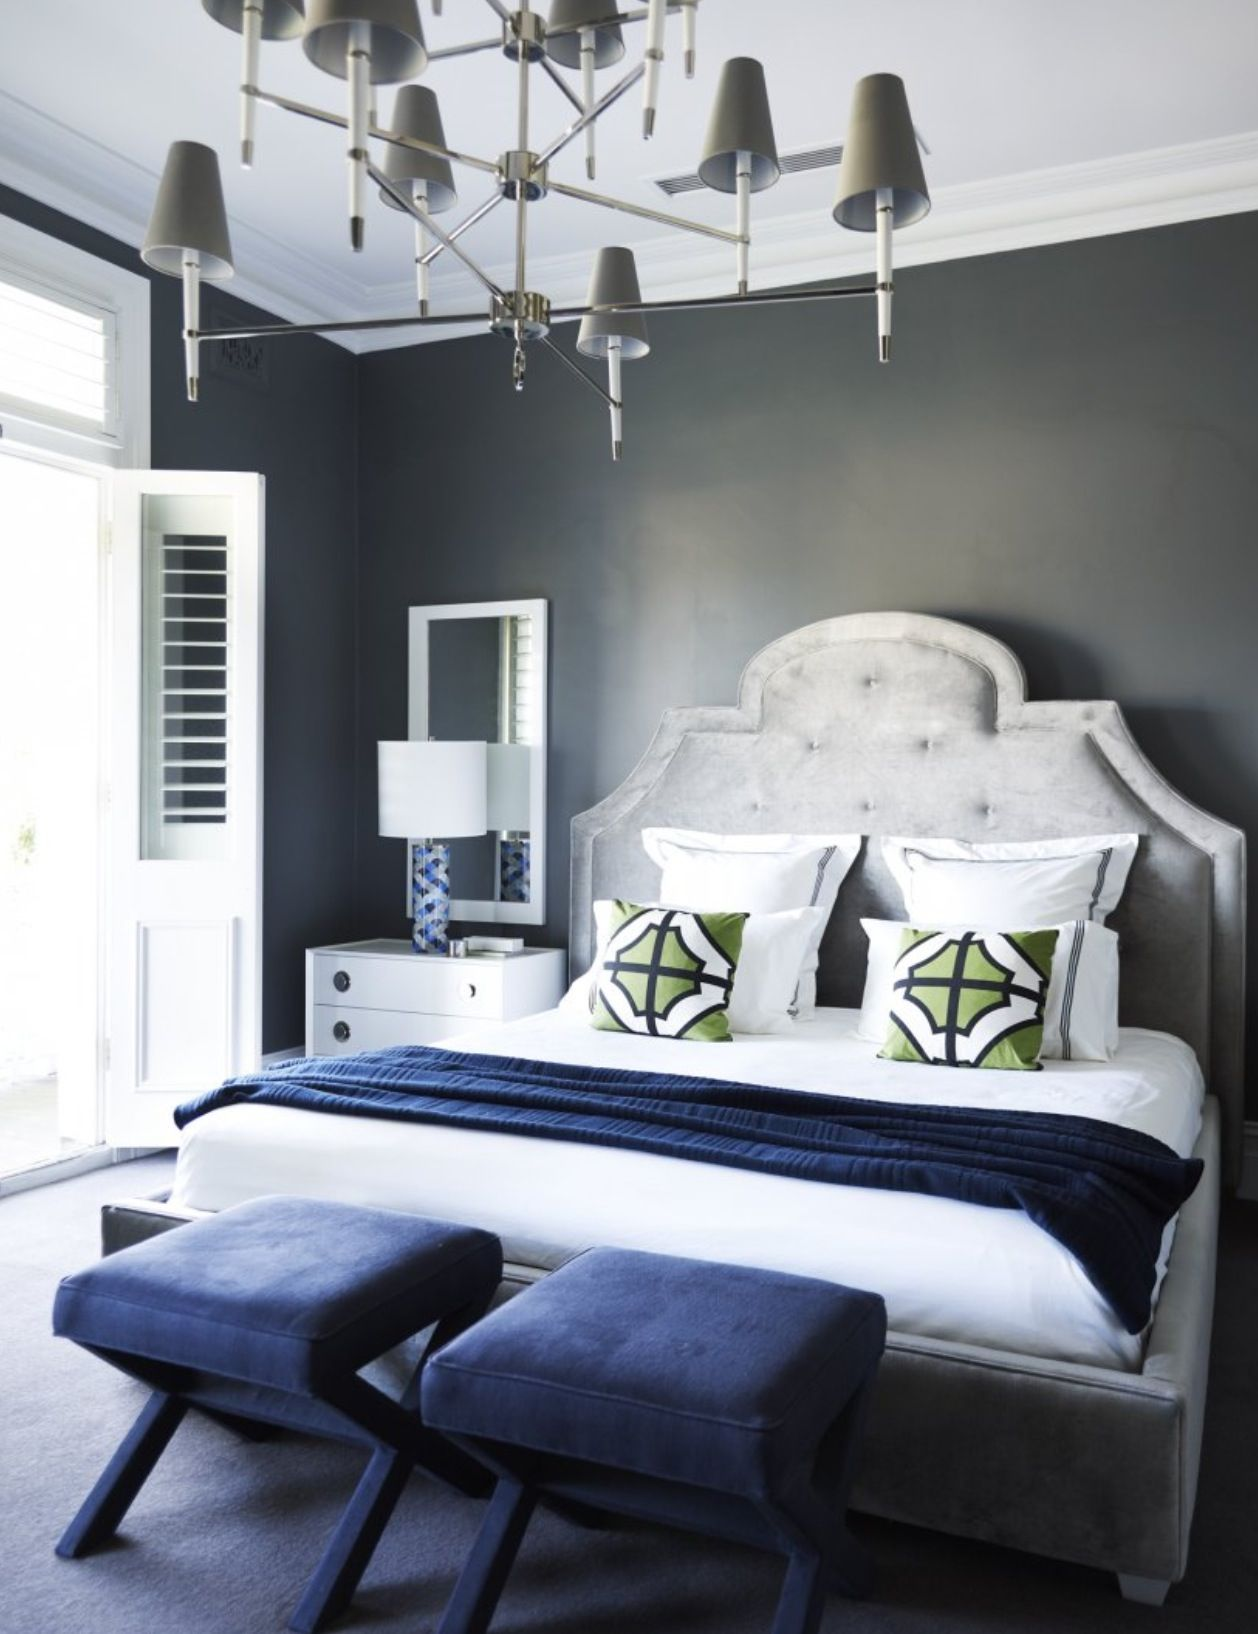 Flip Flop Walls And Headboard Light Grey Paint With Darker